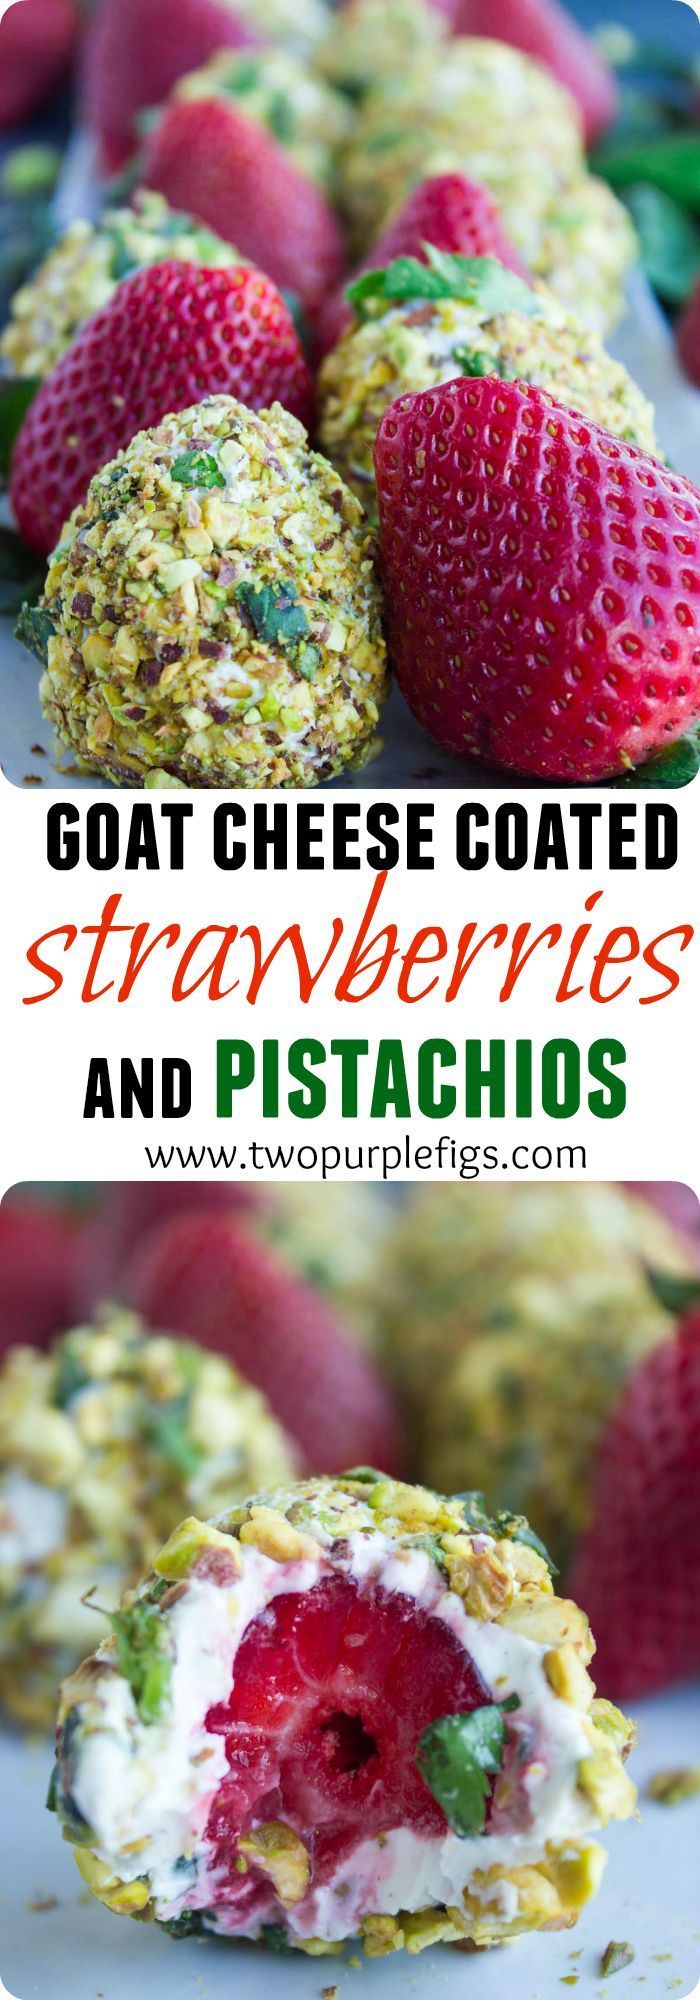 Goat cheese Pistachio Coated Strawberries. A  bite of fruit and cheese BLISS with a pistachio crunch! Each bite is sweet, crunchy, fresh, refreshing and bursting with flavors! This recipe has been a real HIT every single time! www.twopurplefigs.com